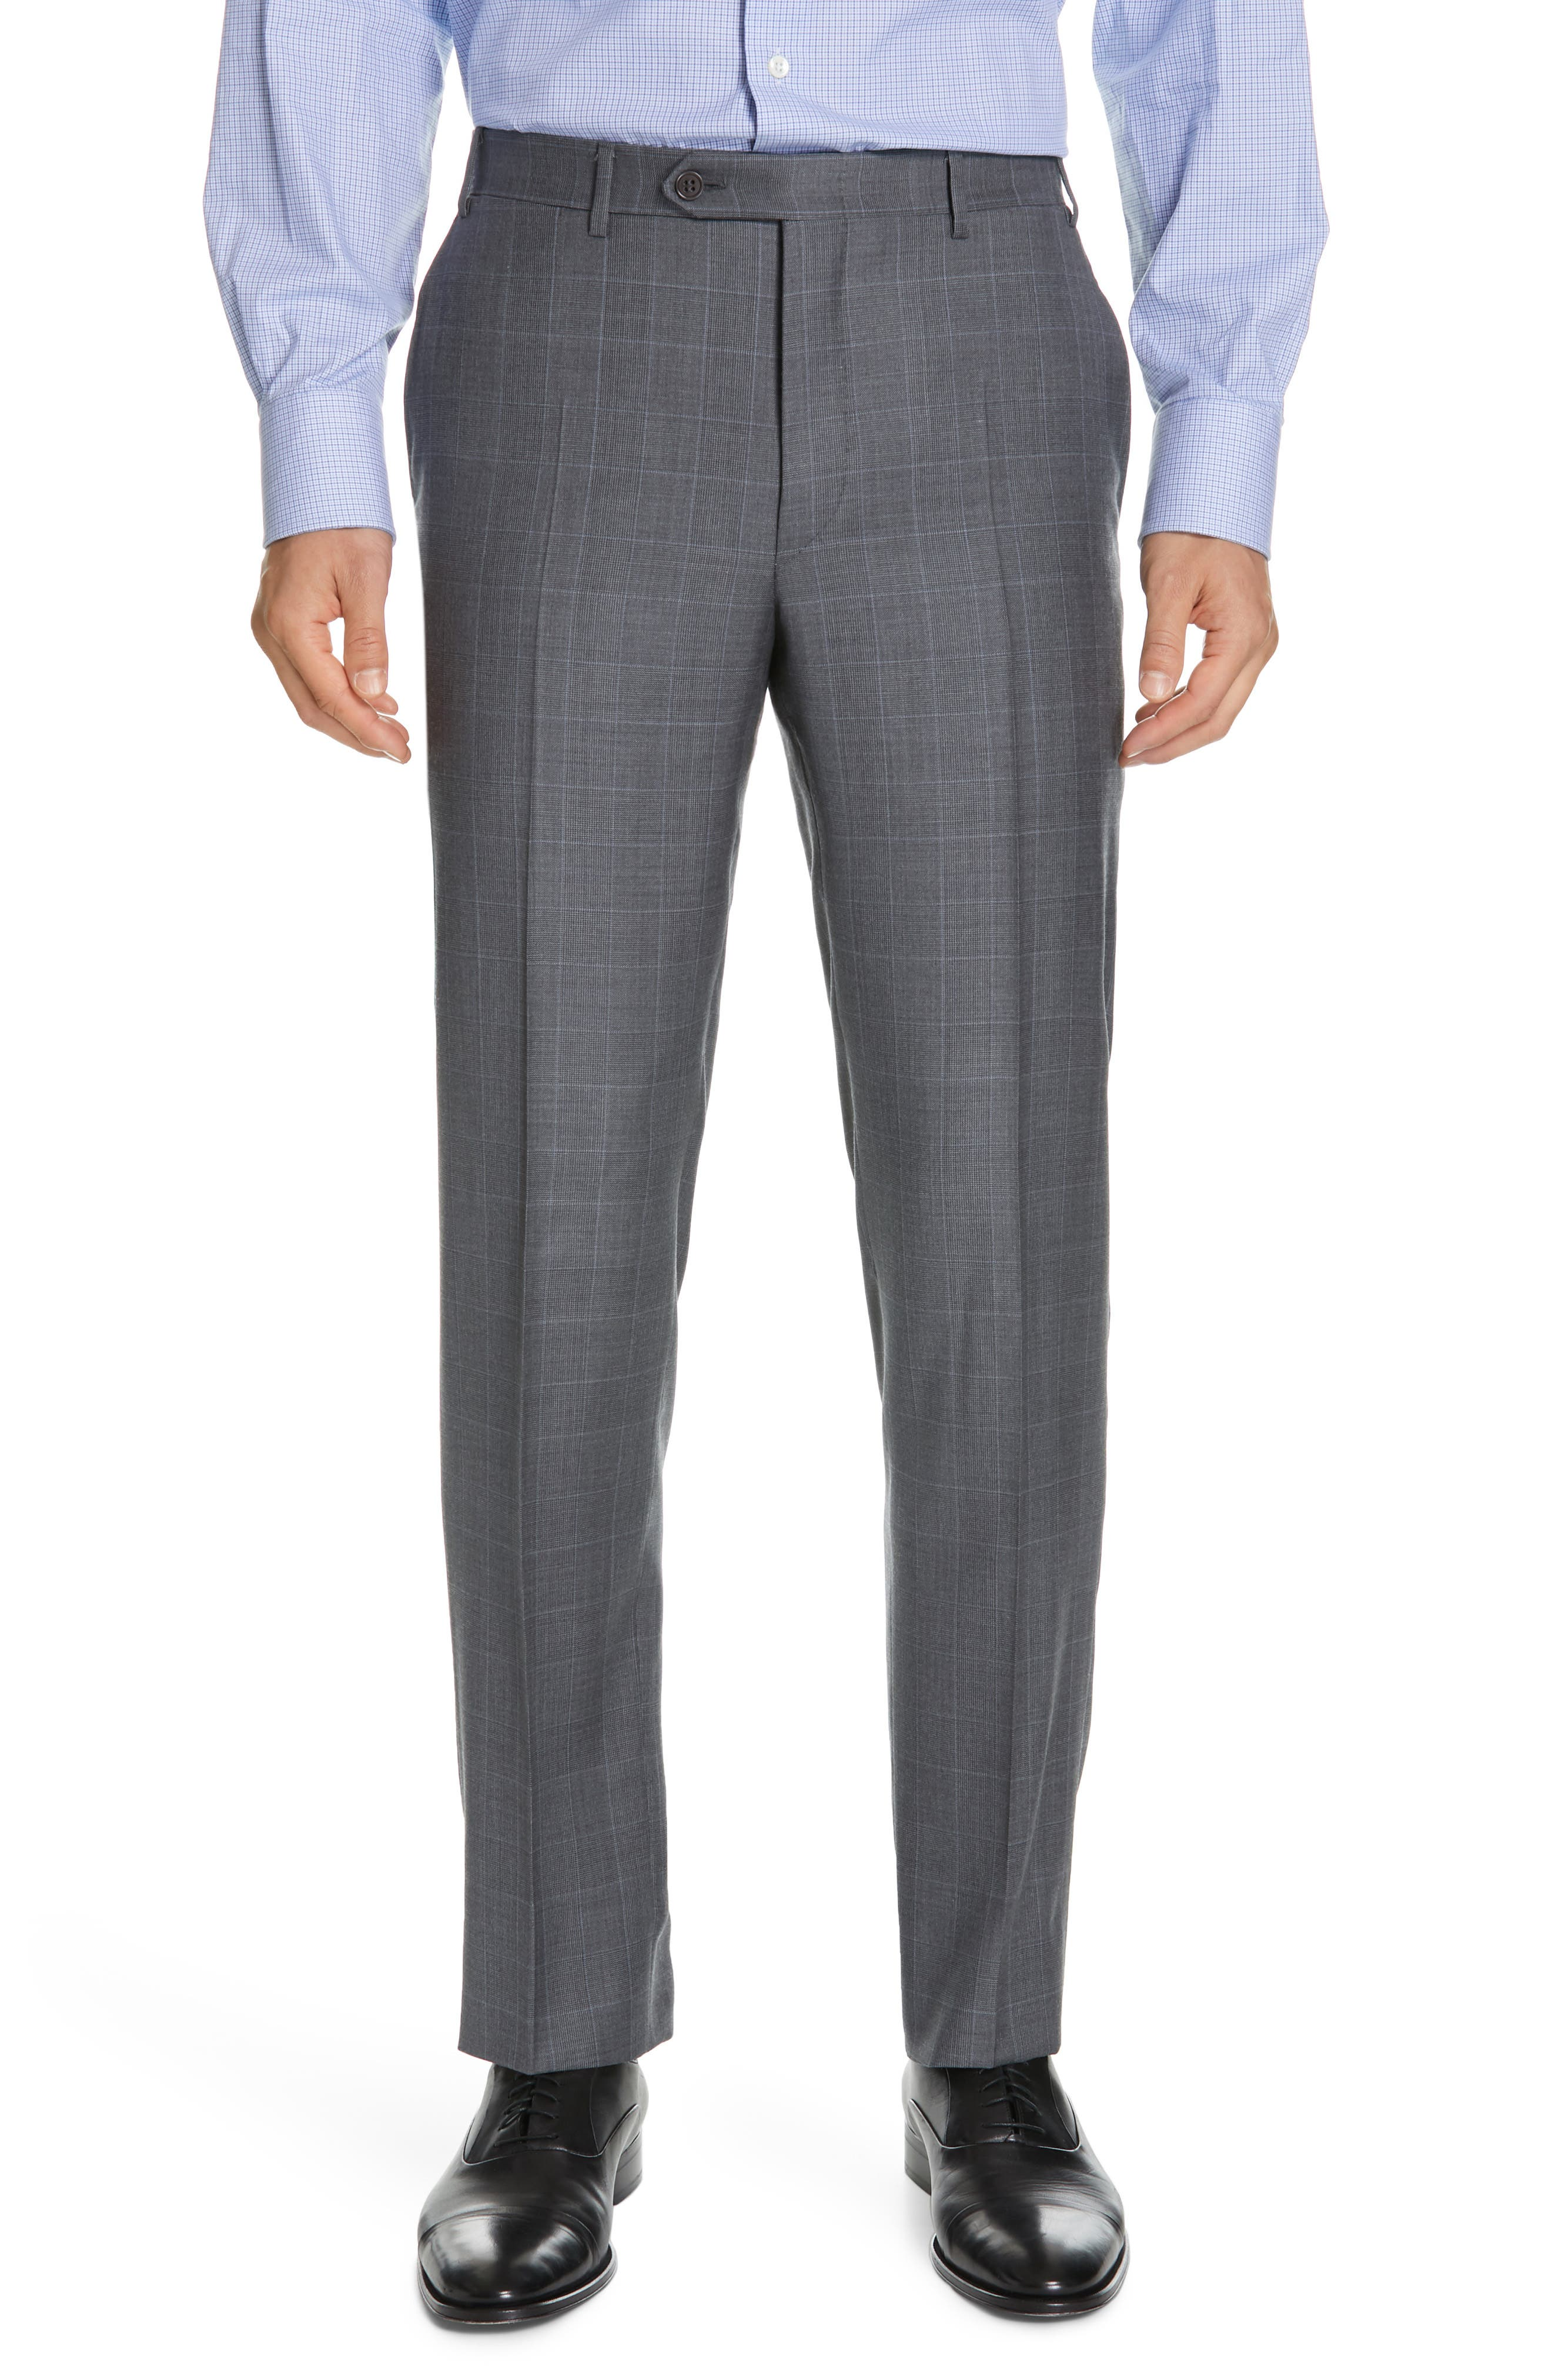 CANALI, Sienna Classic Fit Plaid Wool Suit, Alternate thumbnail 6, color, GREY